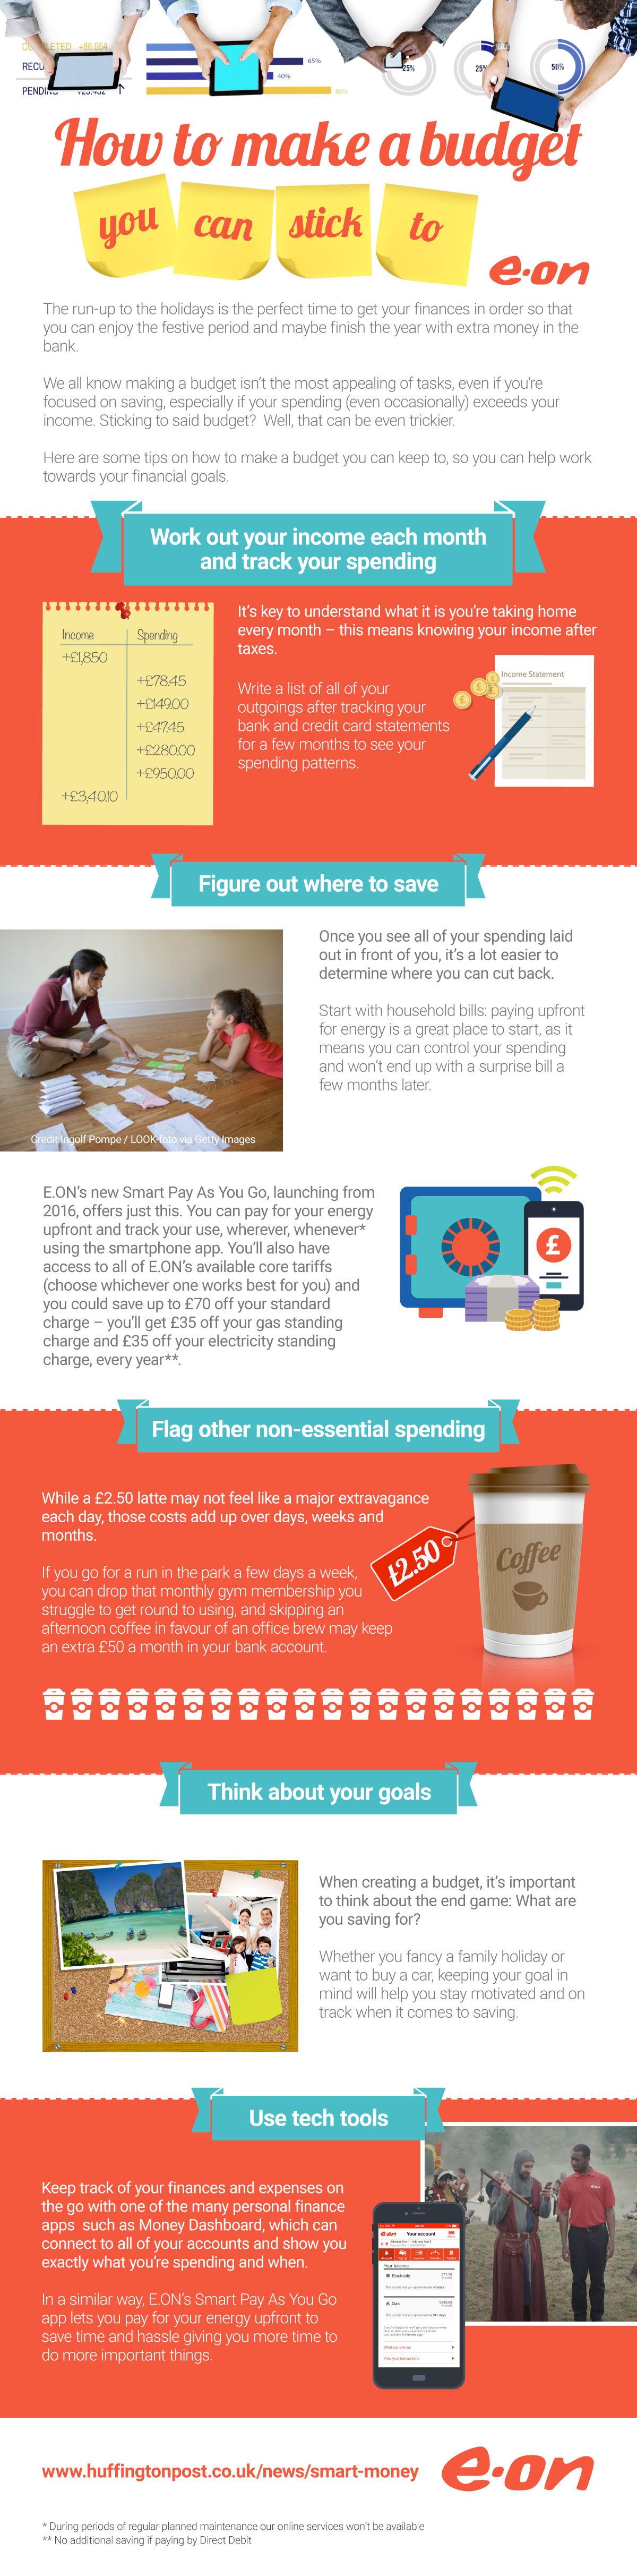 How To Make A Budget You Can Stick To